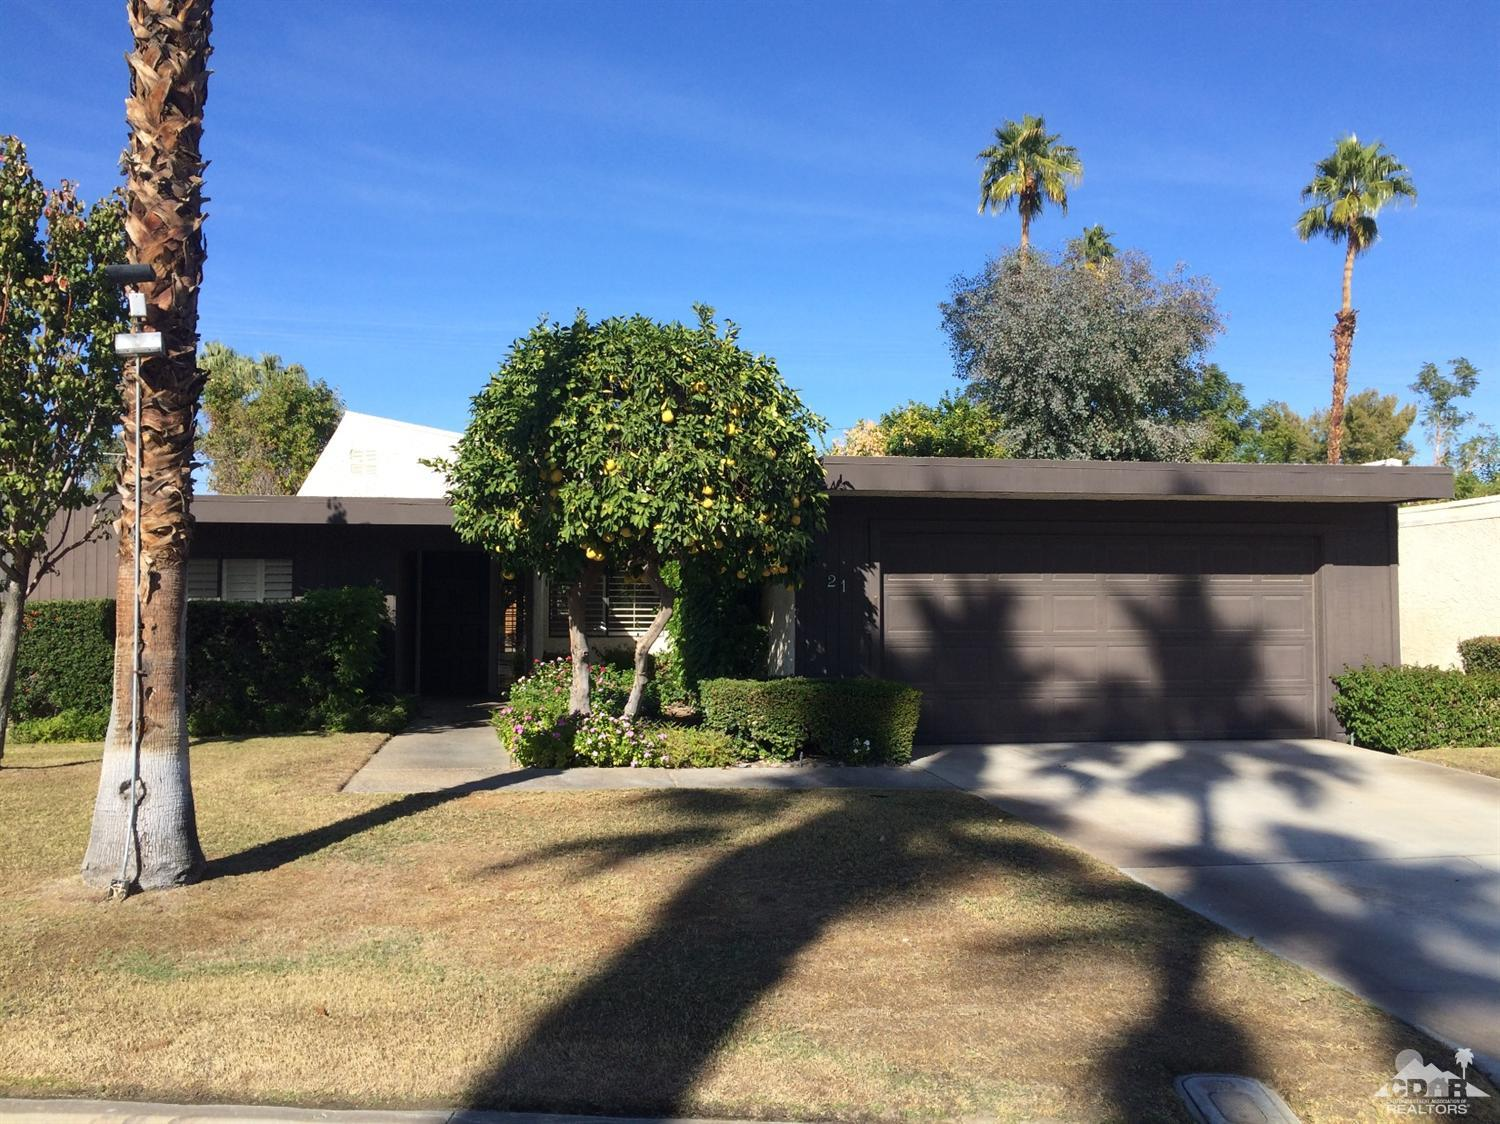 21 Kevin Lee Lane Ln, Rancho Mirage, CA